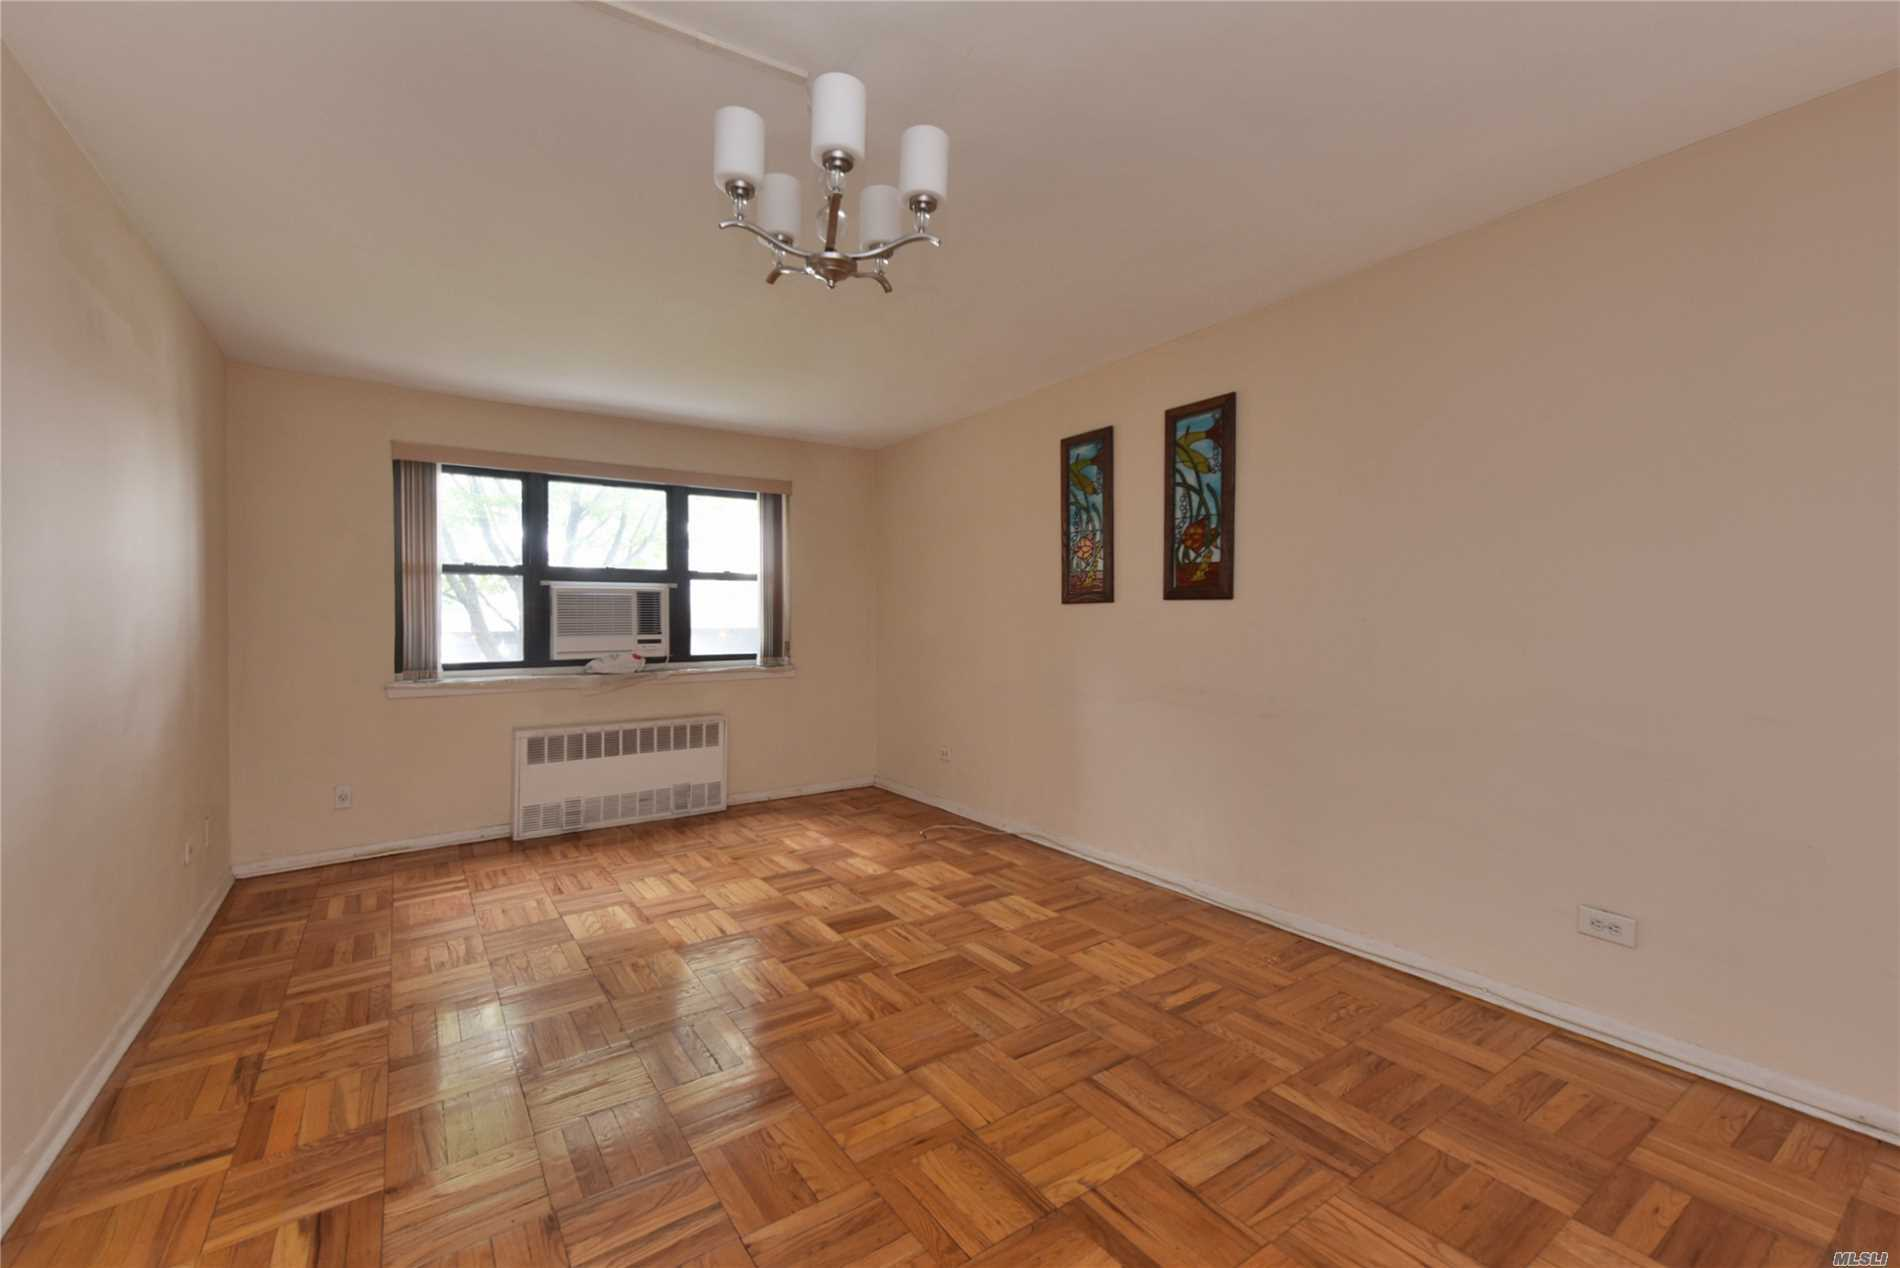 29-30 137 St 11354 - One of Flushing Homes for Sale